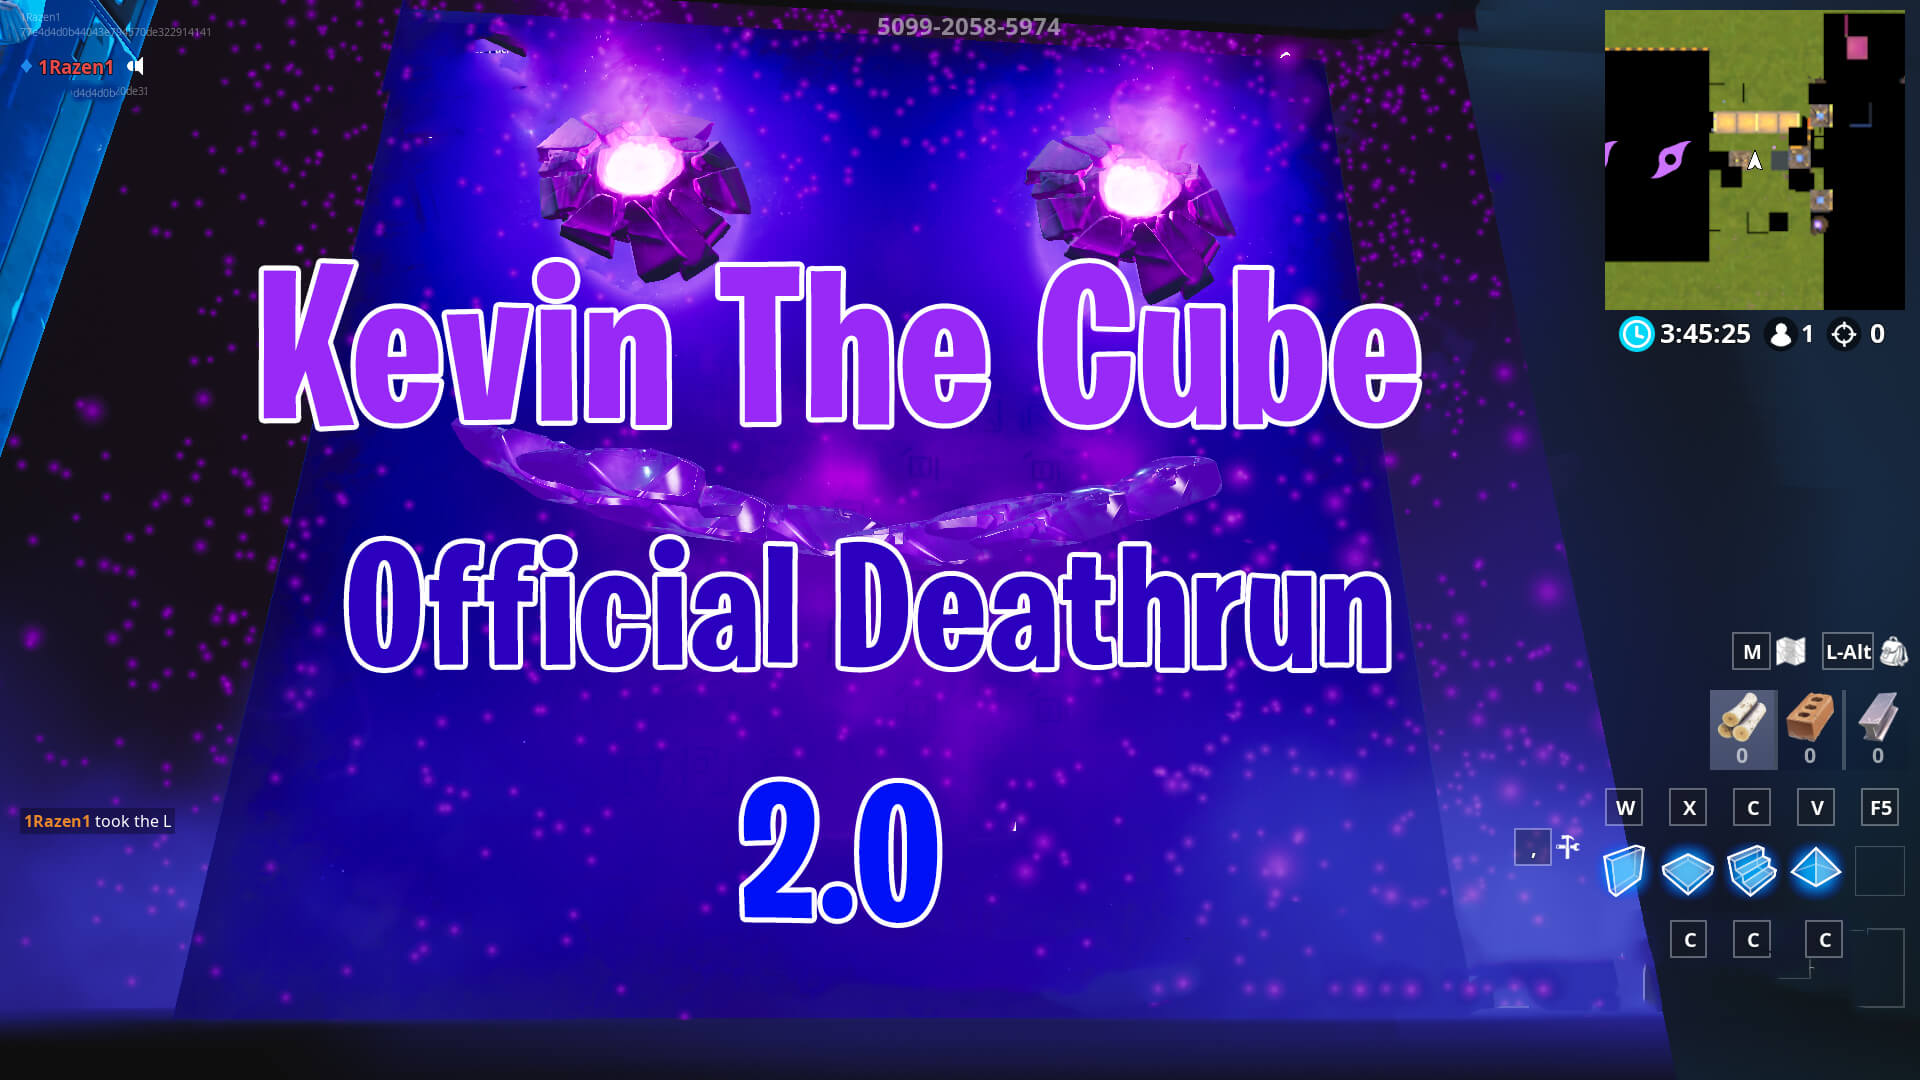 KEVIN THE CUBE OFFICIAL DEATHRUN 2.0